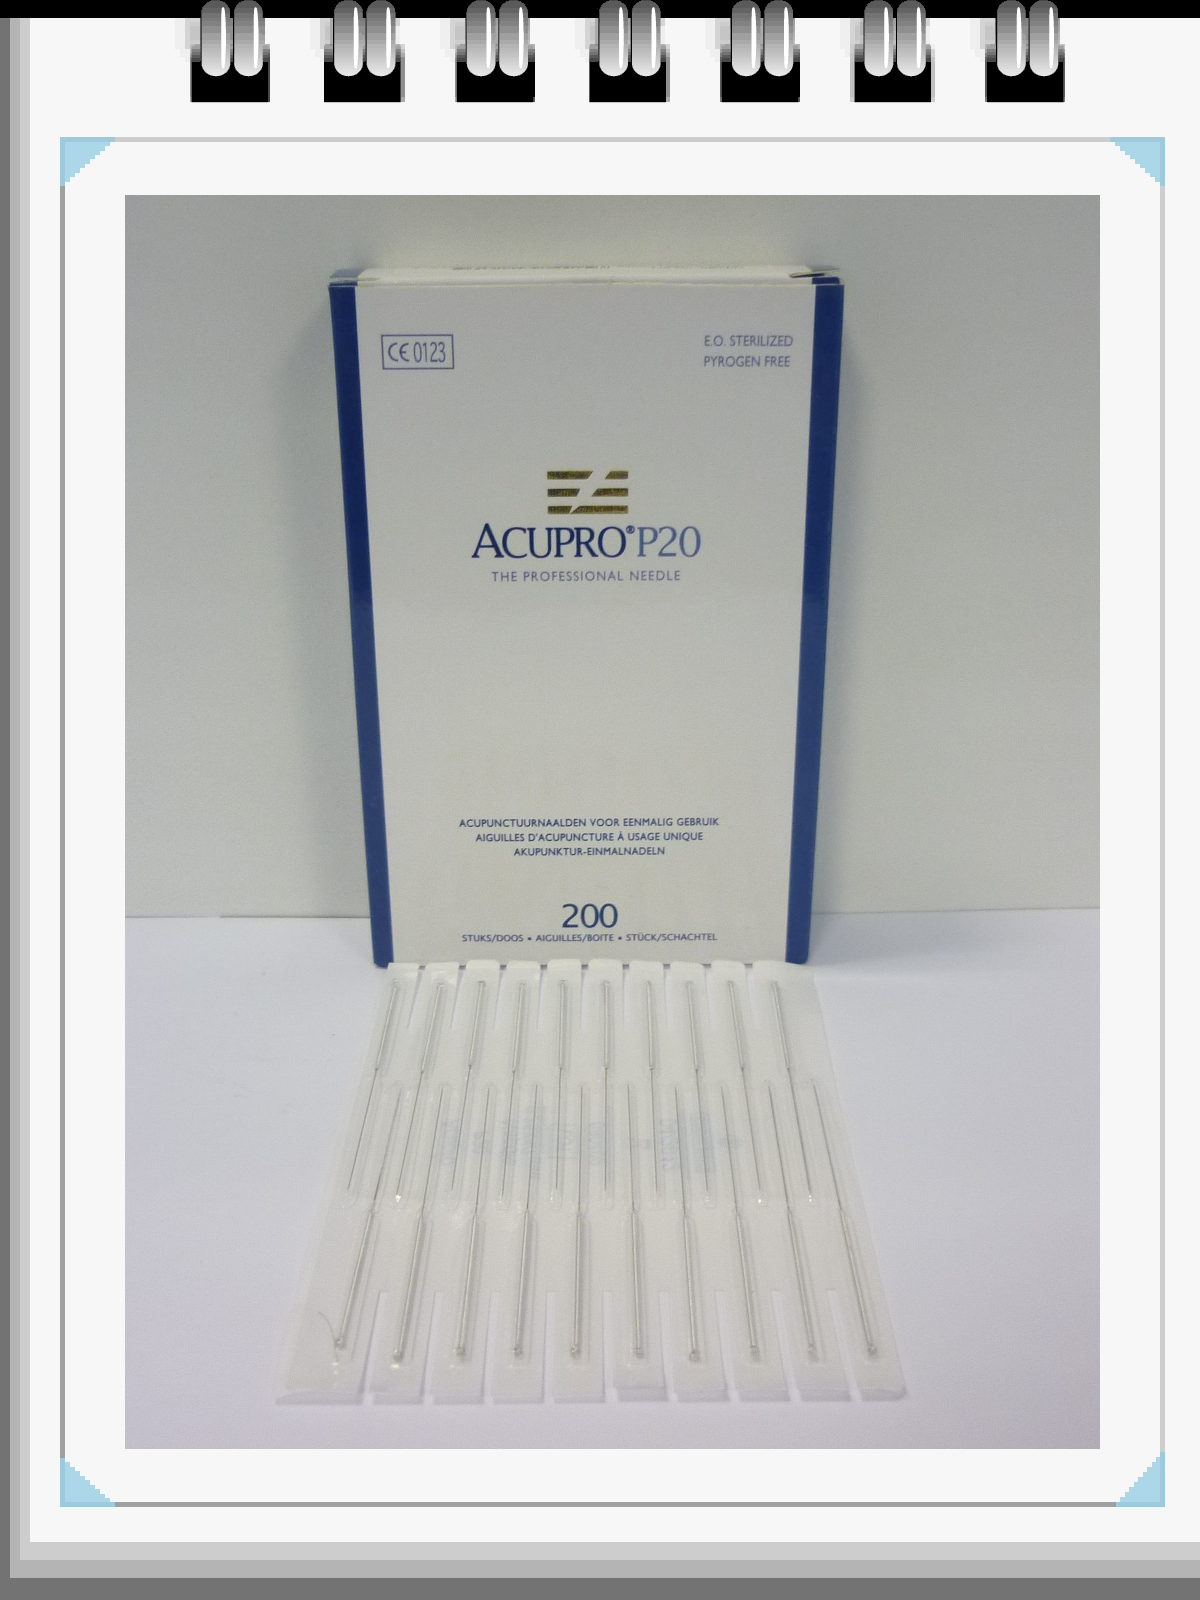 All Products - Acupunctuurnaalden: 0,22 x 50mm, p--200